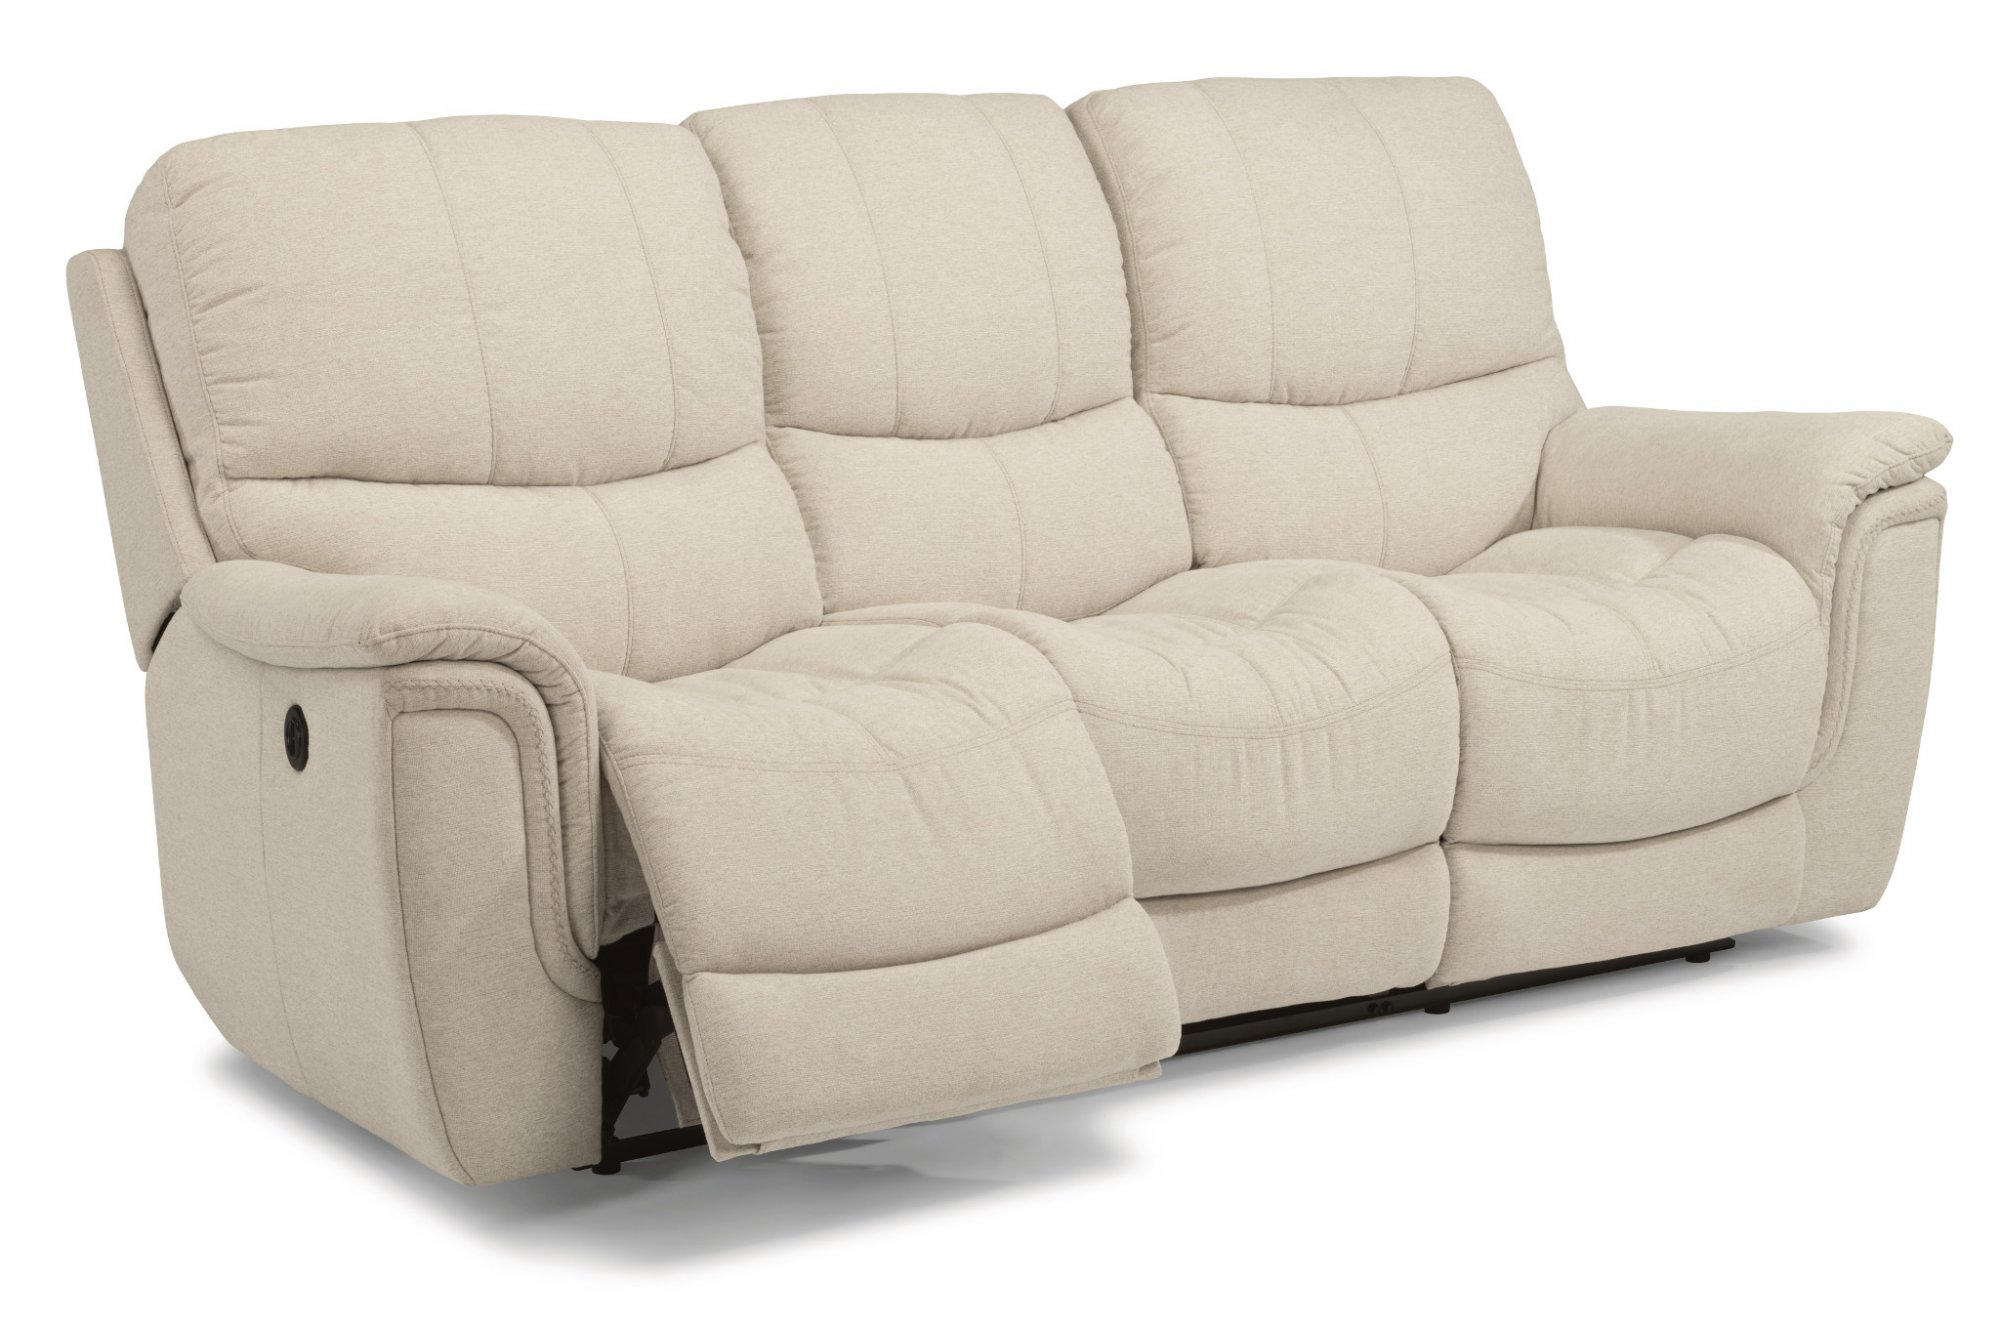 Reclining Chairs Sofas Reclining Furniture From Flexsteel - Power recliner sofas